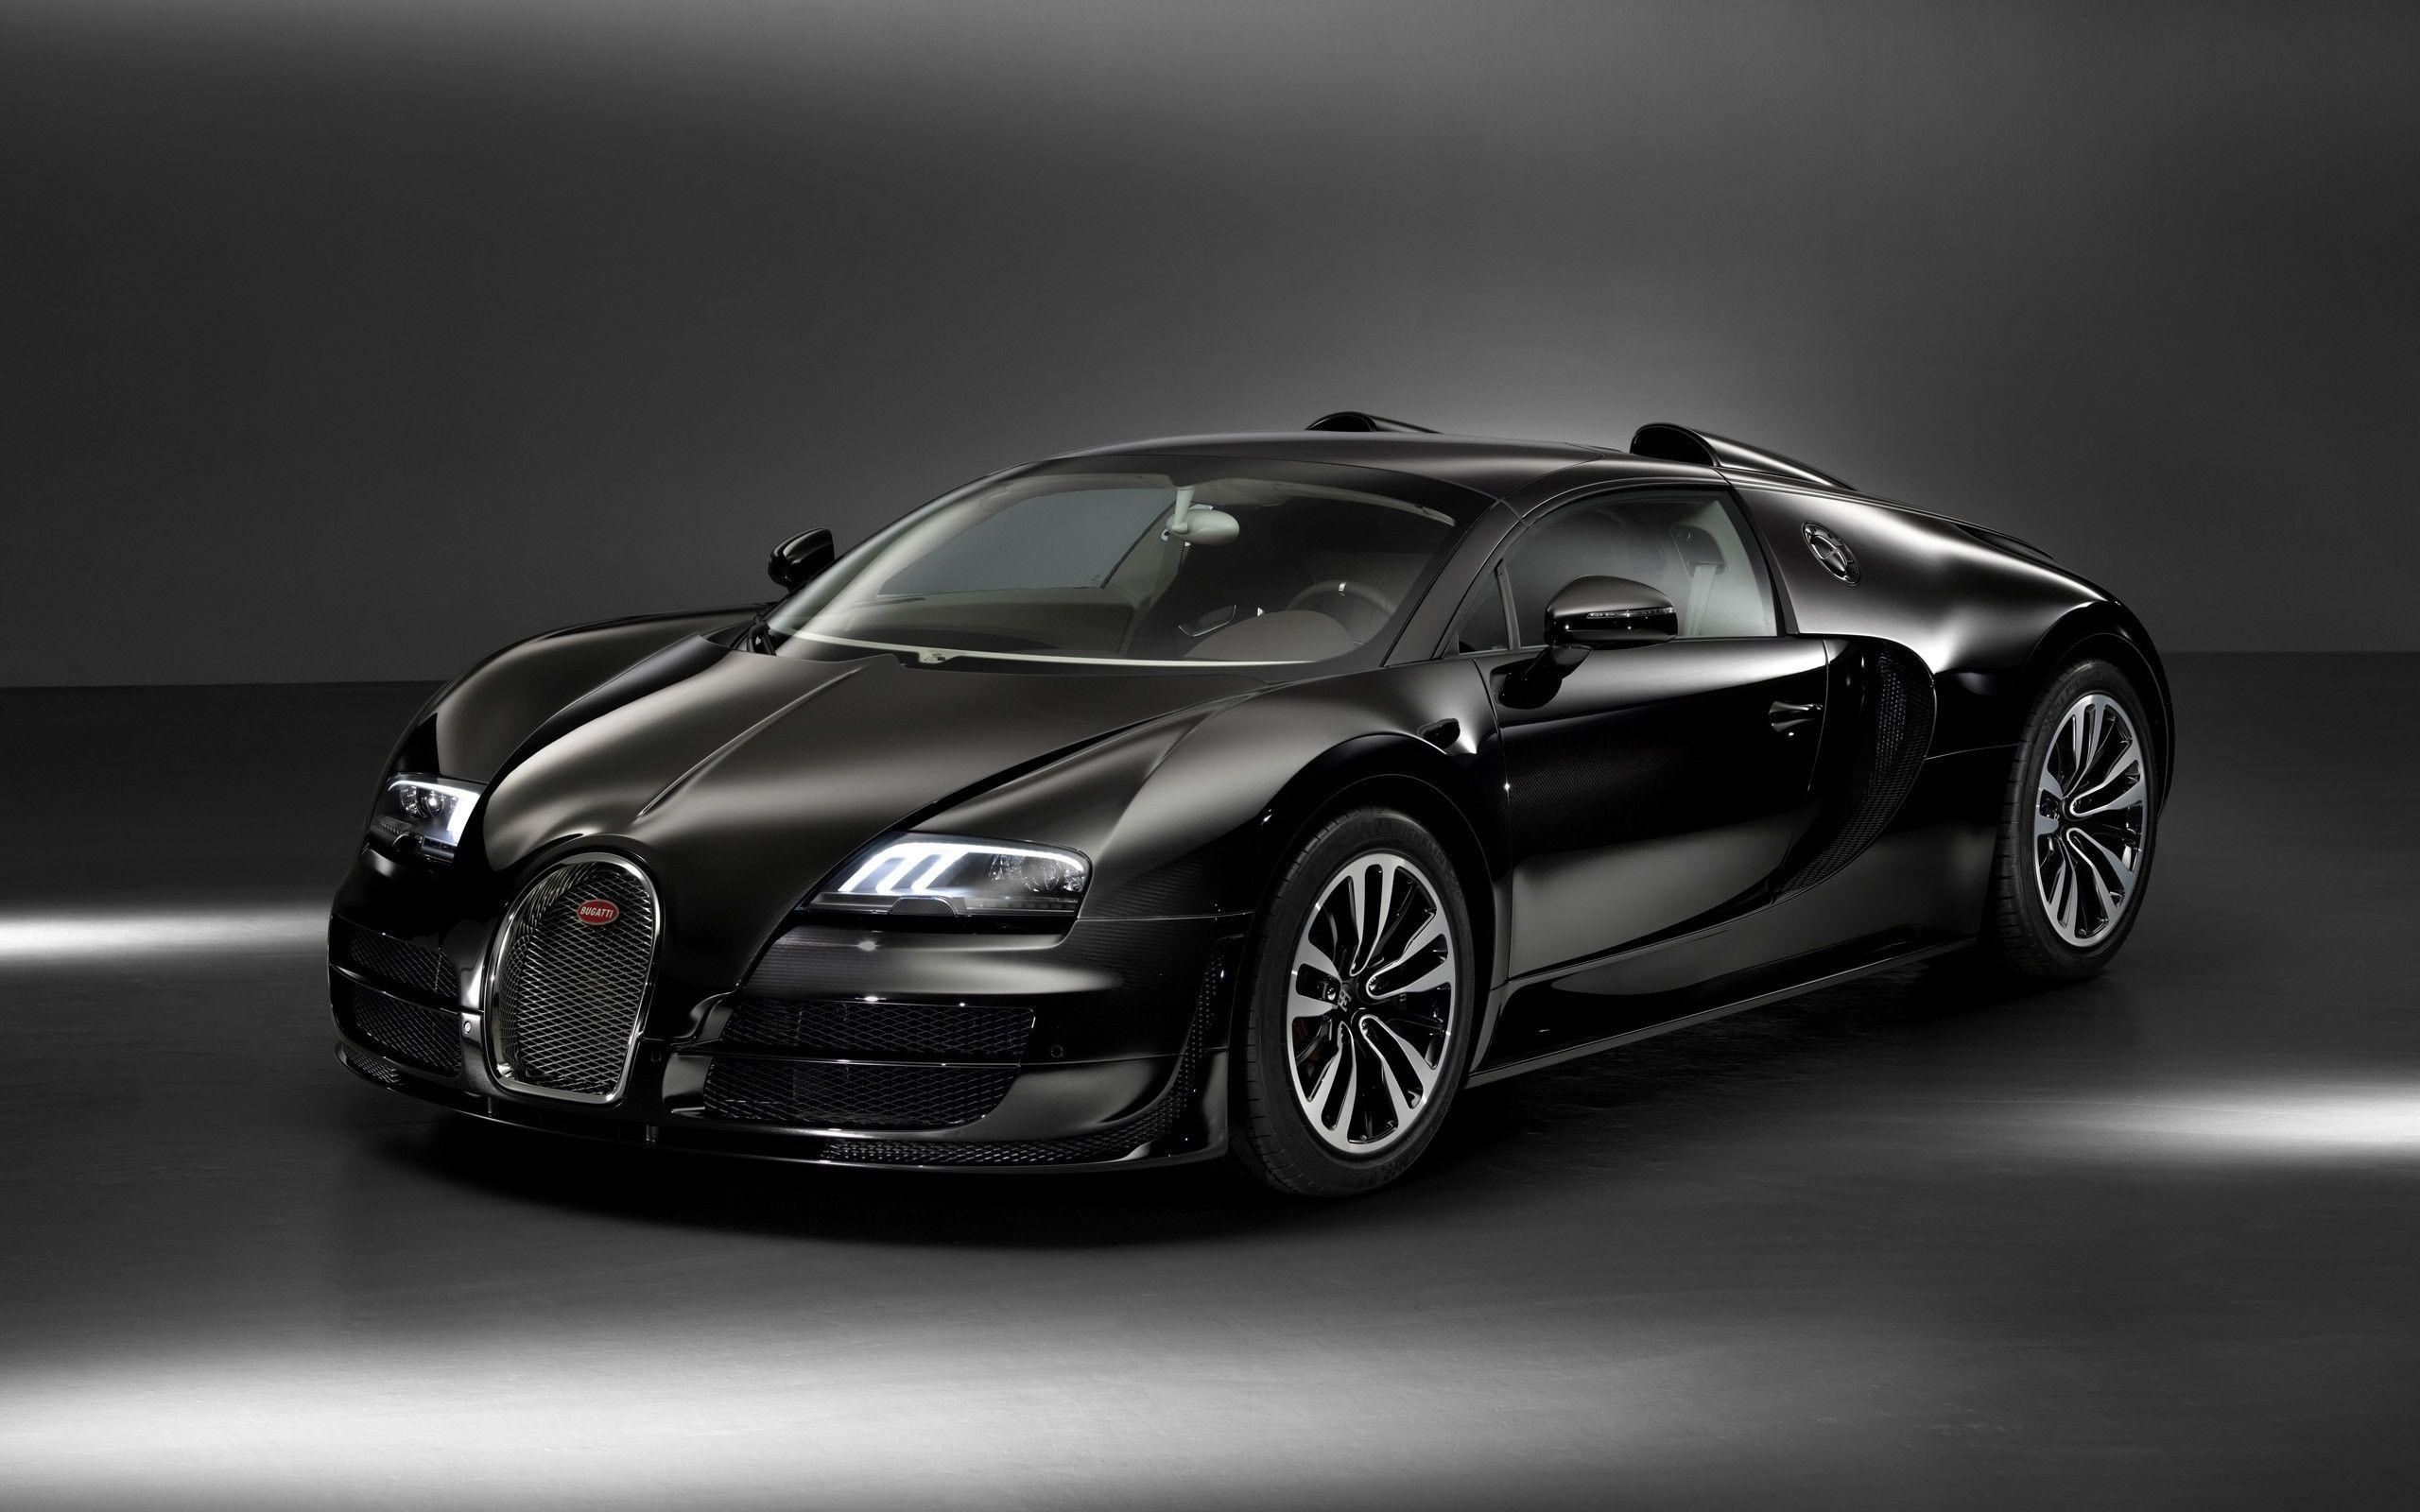 2013 Bugatti Veyron Wallpaper Sport 4791 Full HD Wallpaper Desktop ...